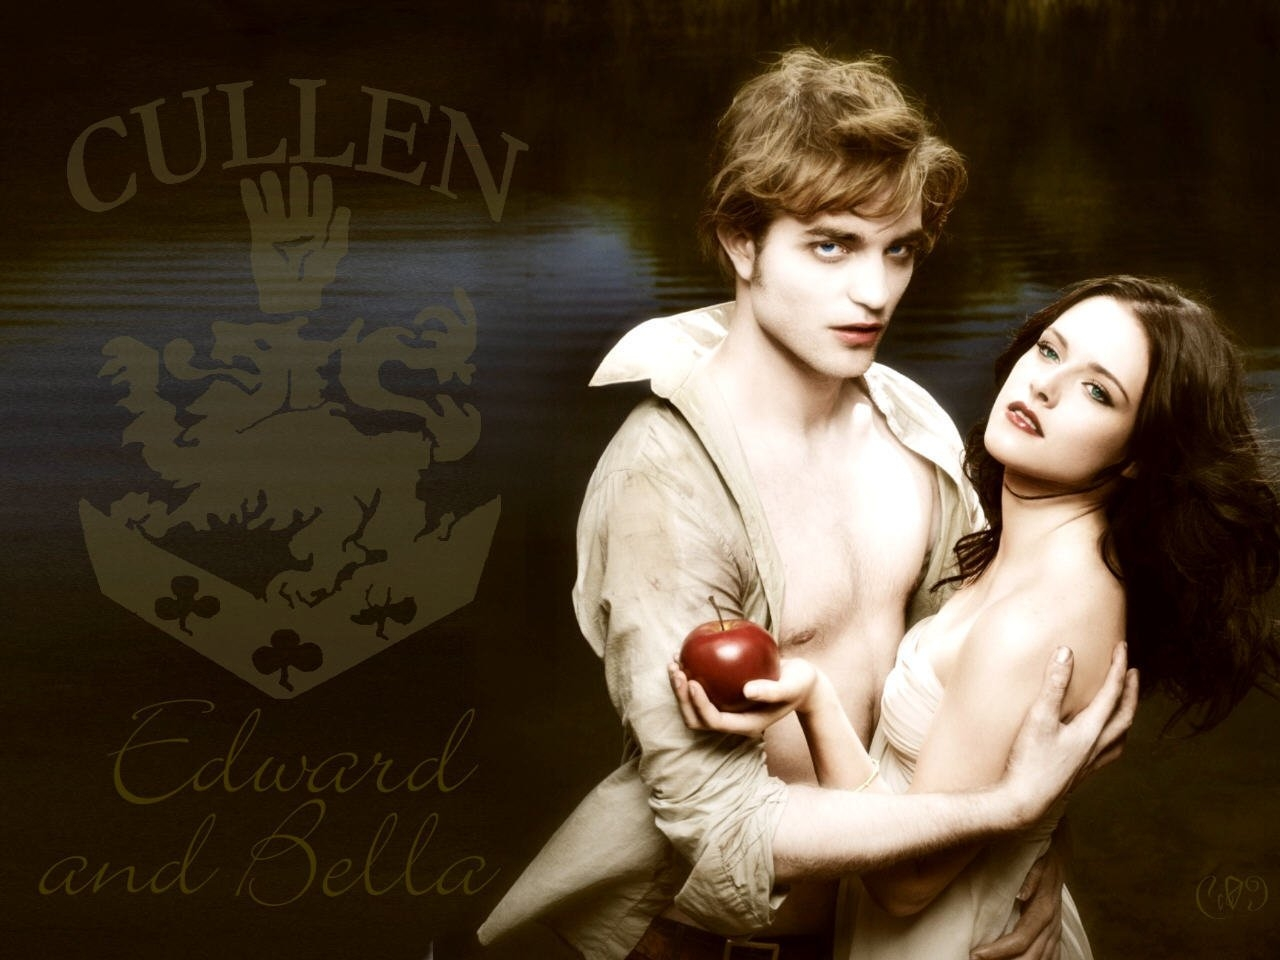 Edward-and-Bella-twilight-series-7119321-1280-960 - сумреки обои